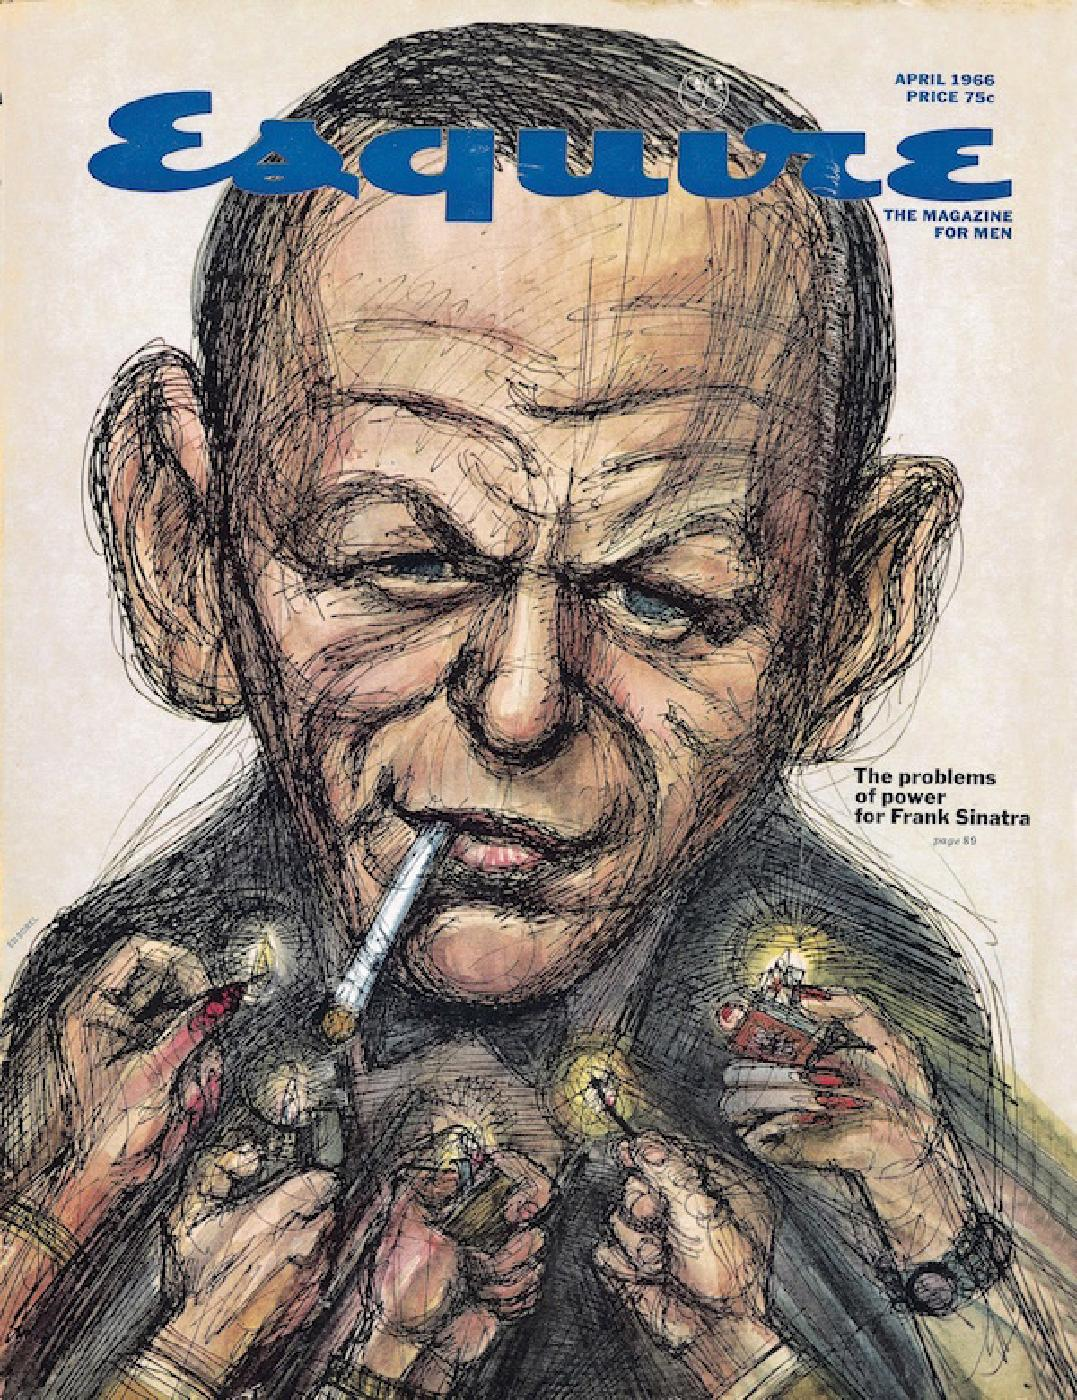 The April 1966 cover of <em>Esquire</em>, illustrated by Ed Sorel